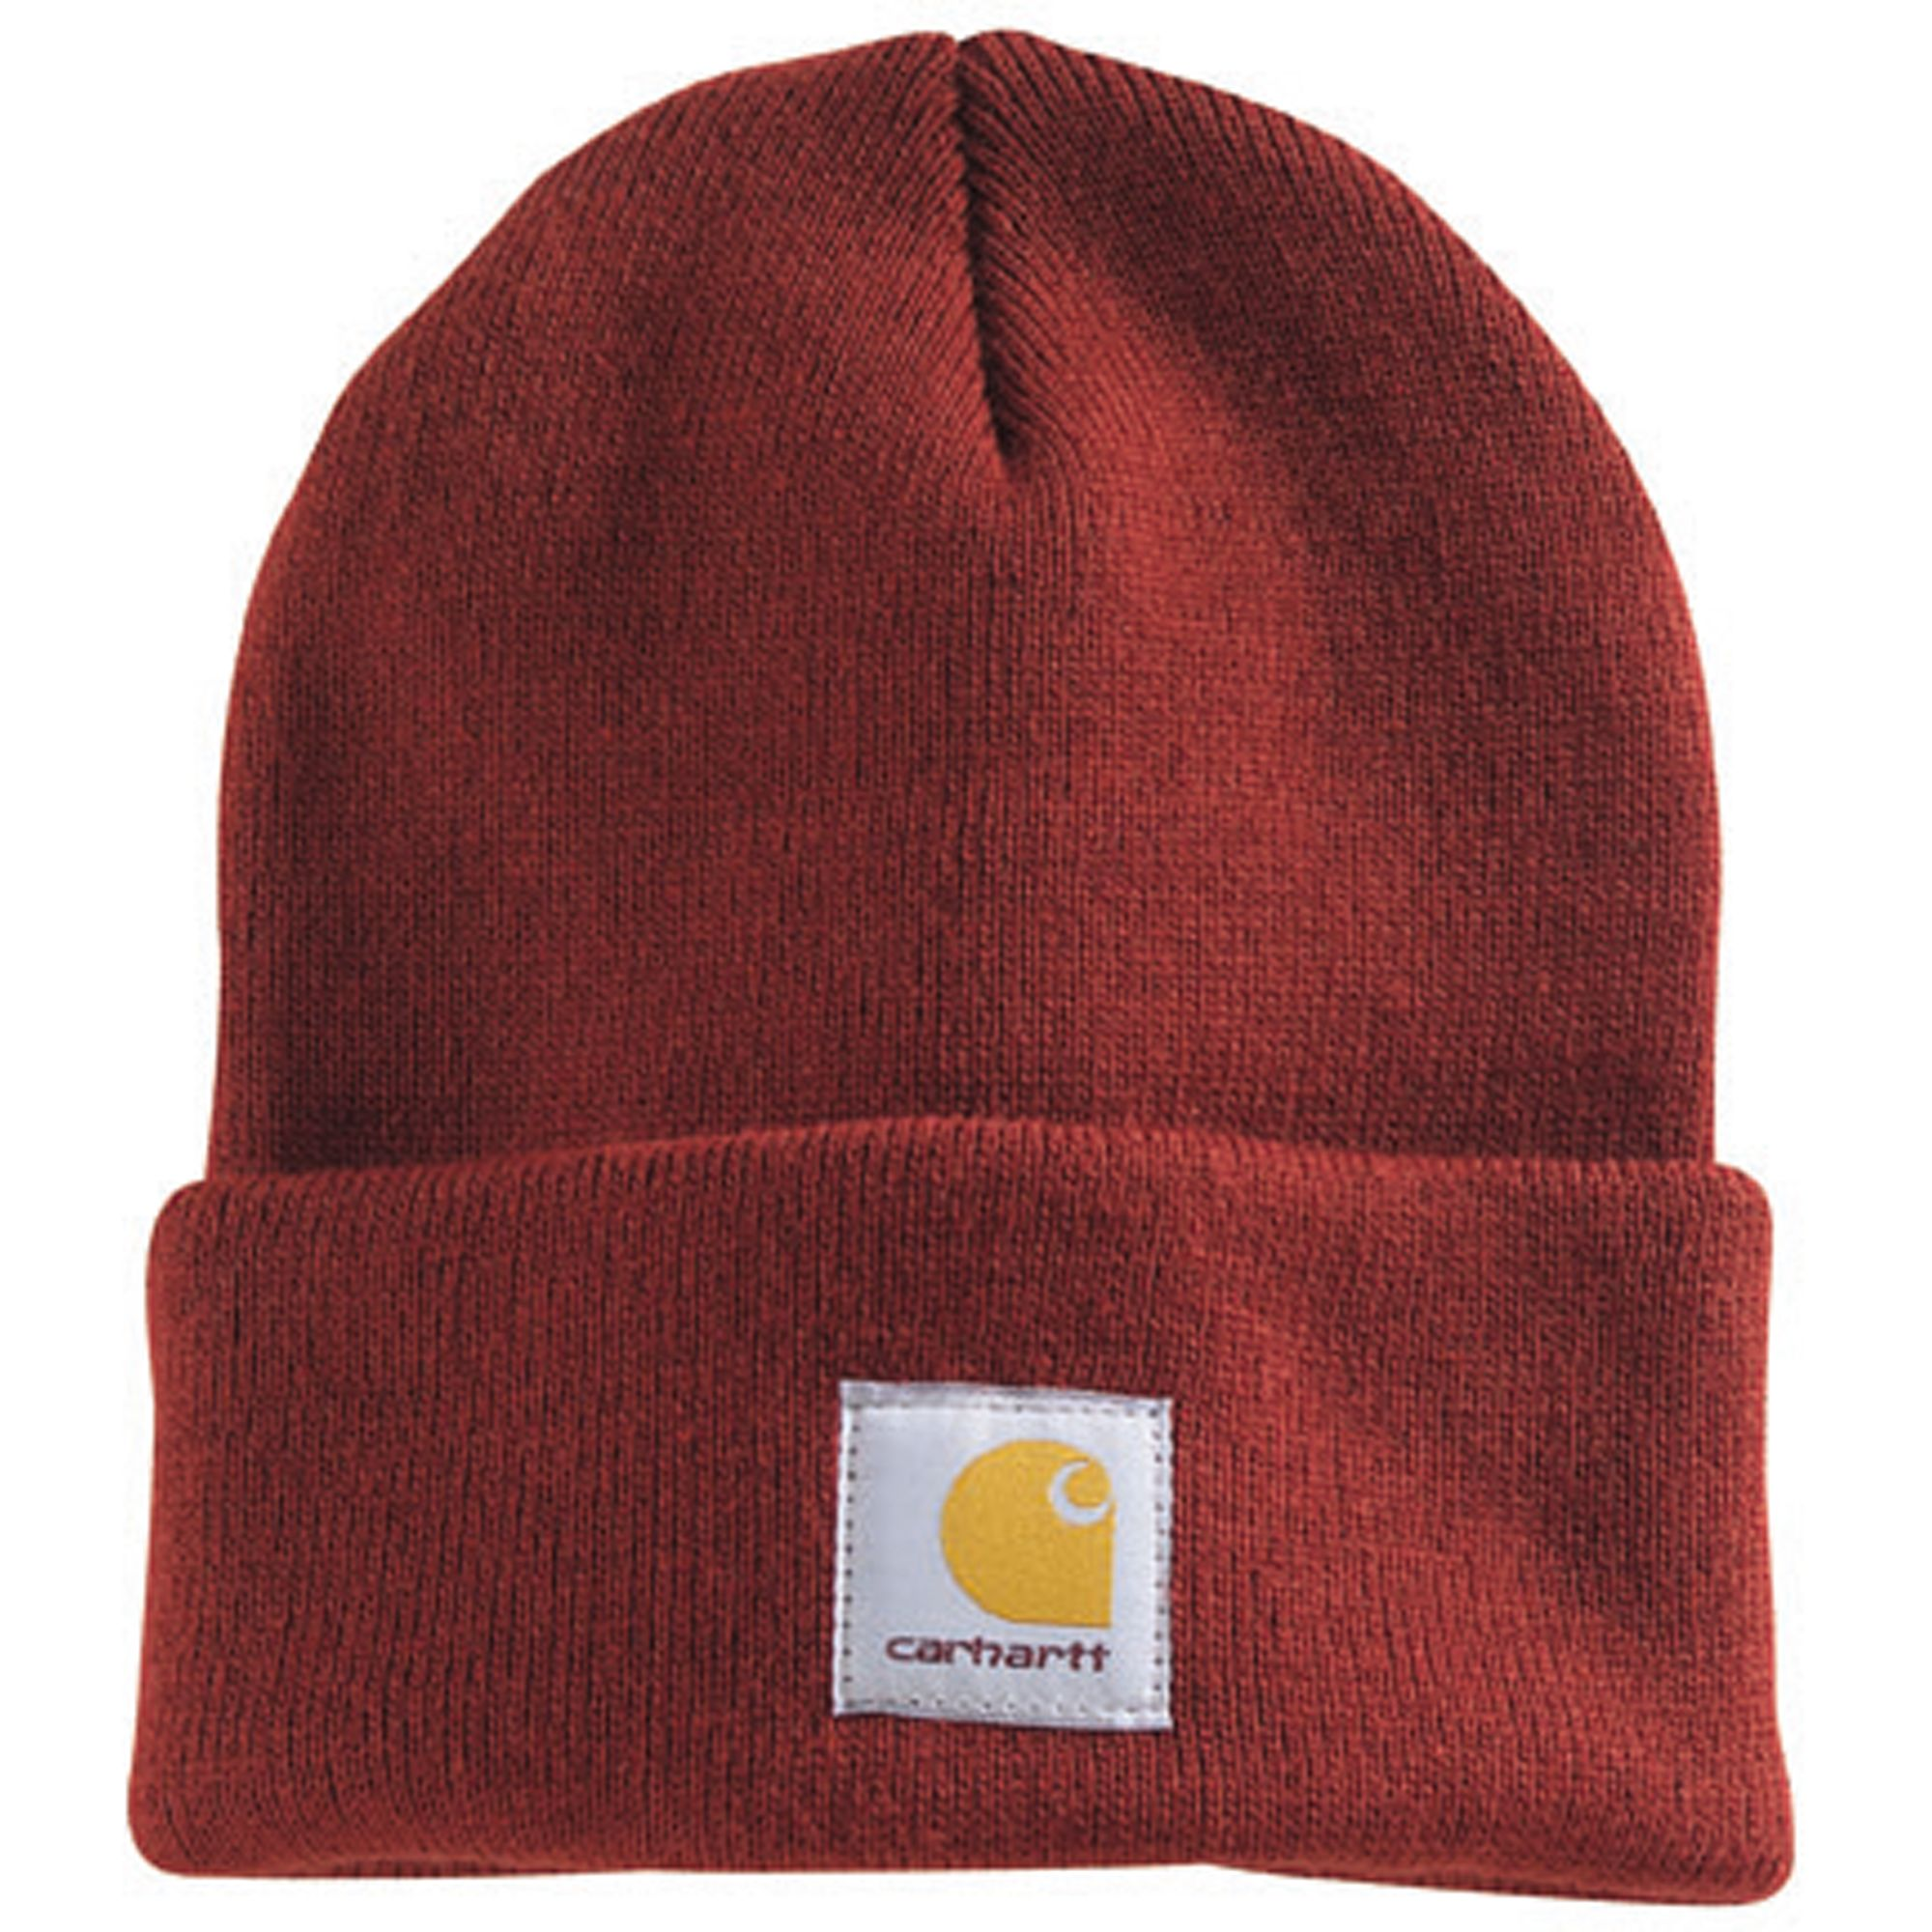 Carhartt - Product - Acrylic Watch Hat